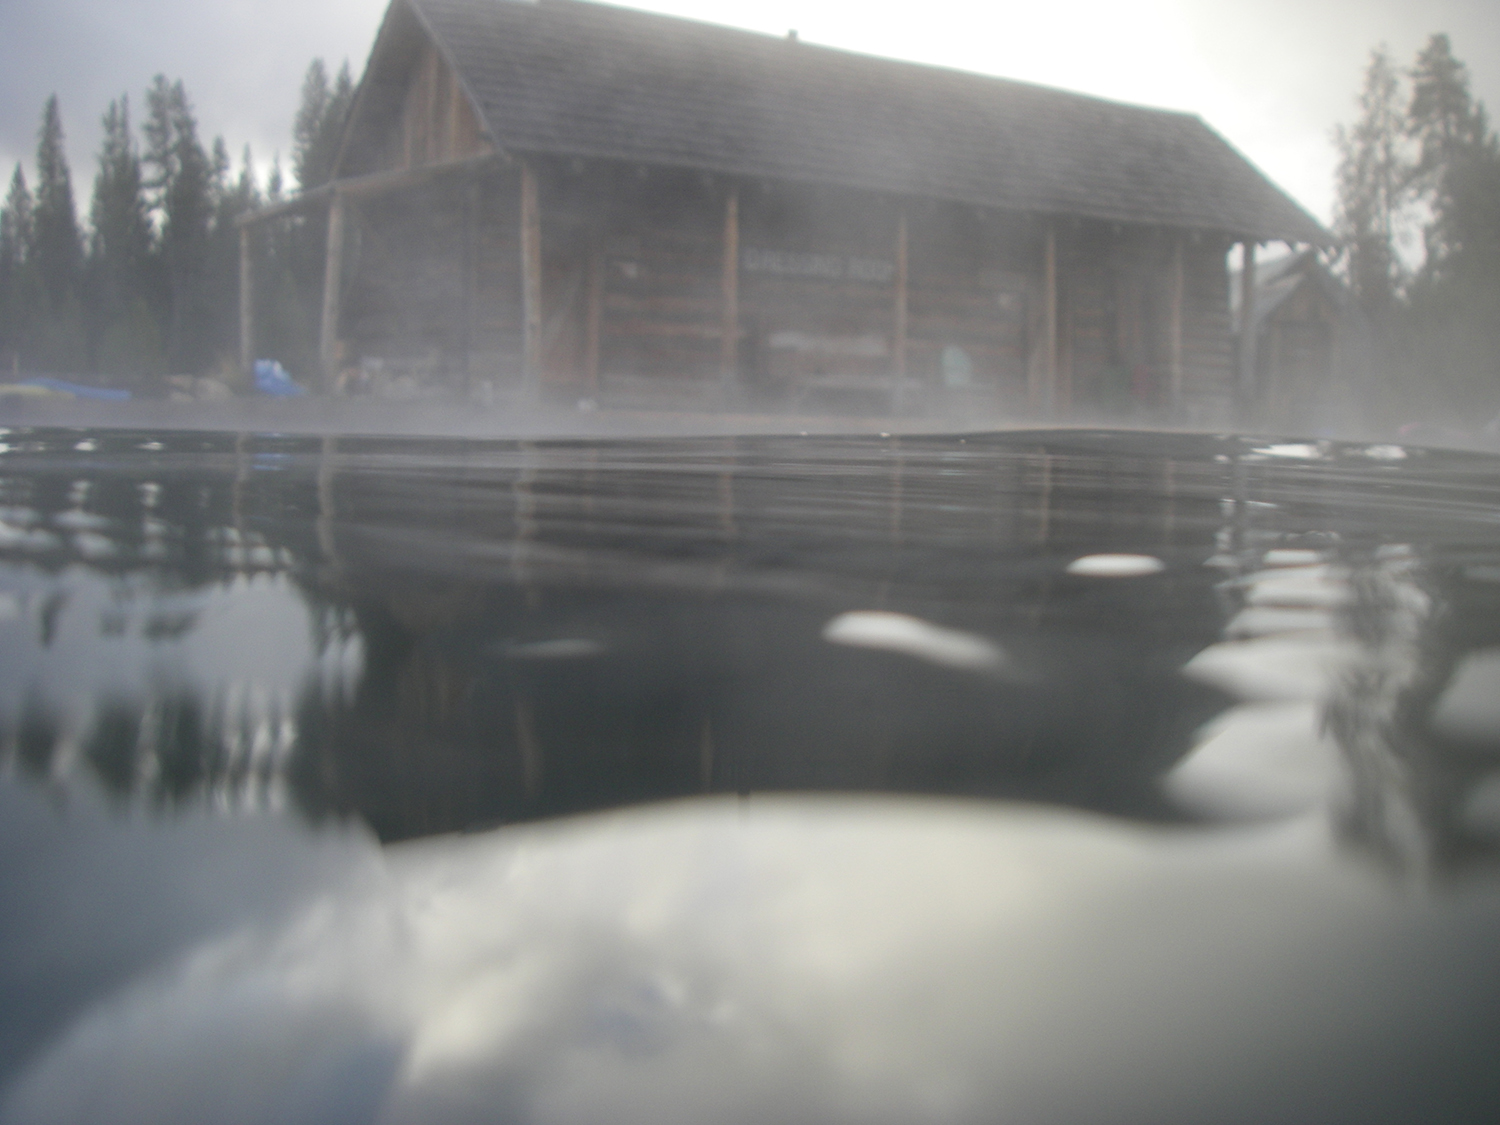 A swimmer's view of the changing rooms at the hot springs.  (Image by Emily Benson)